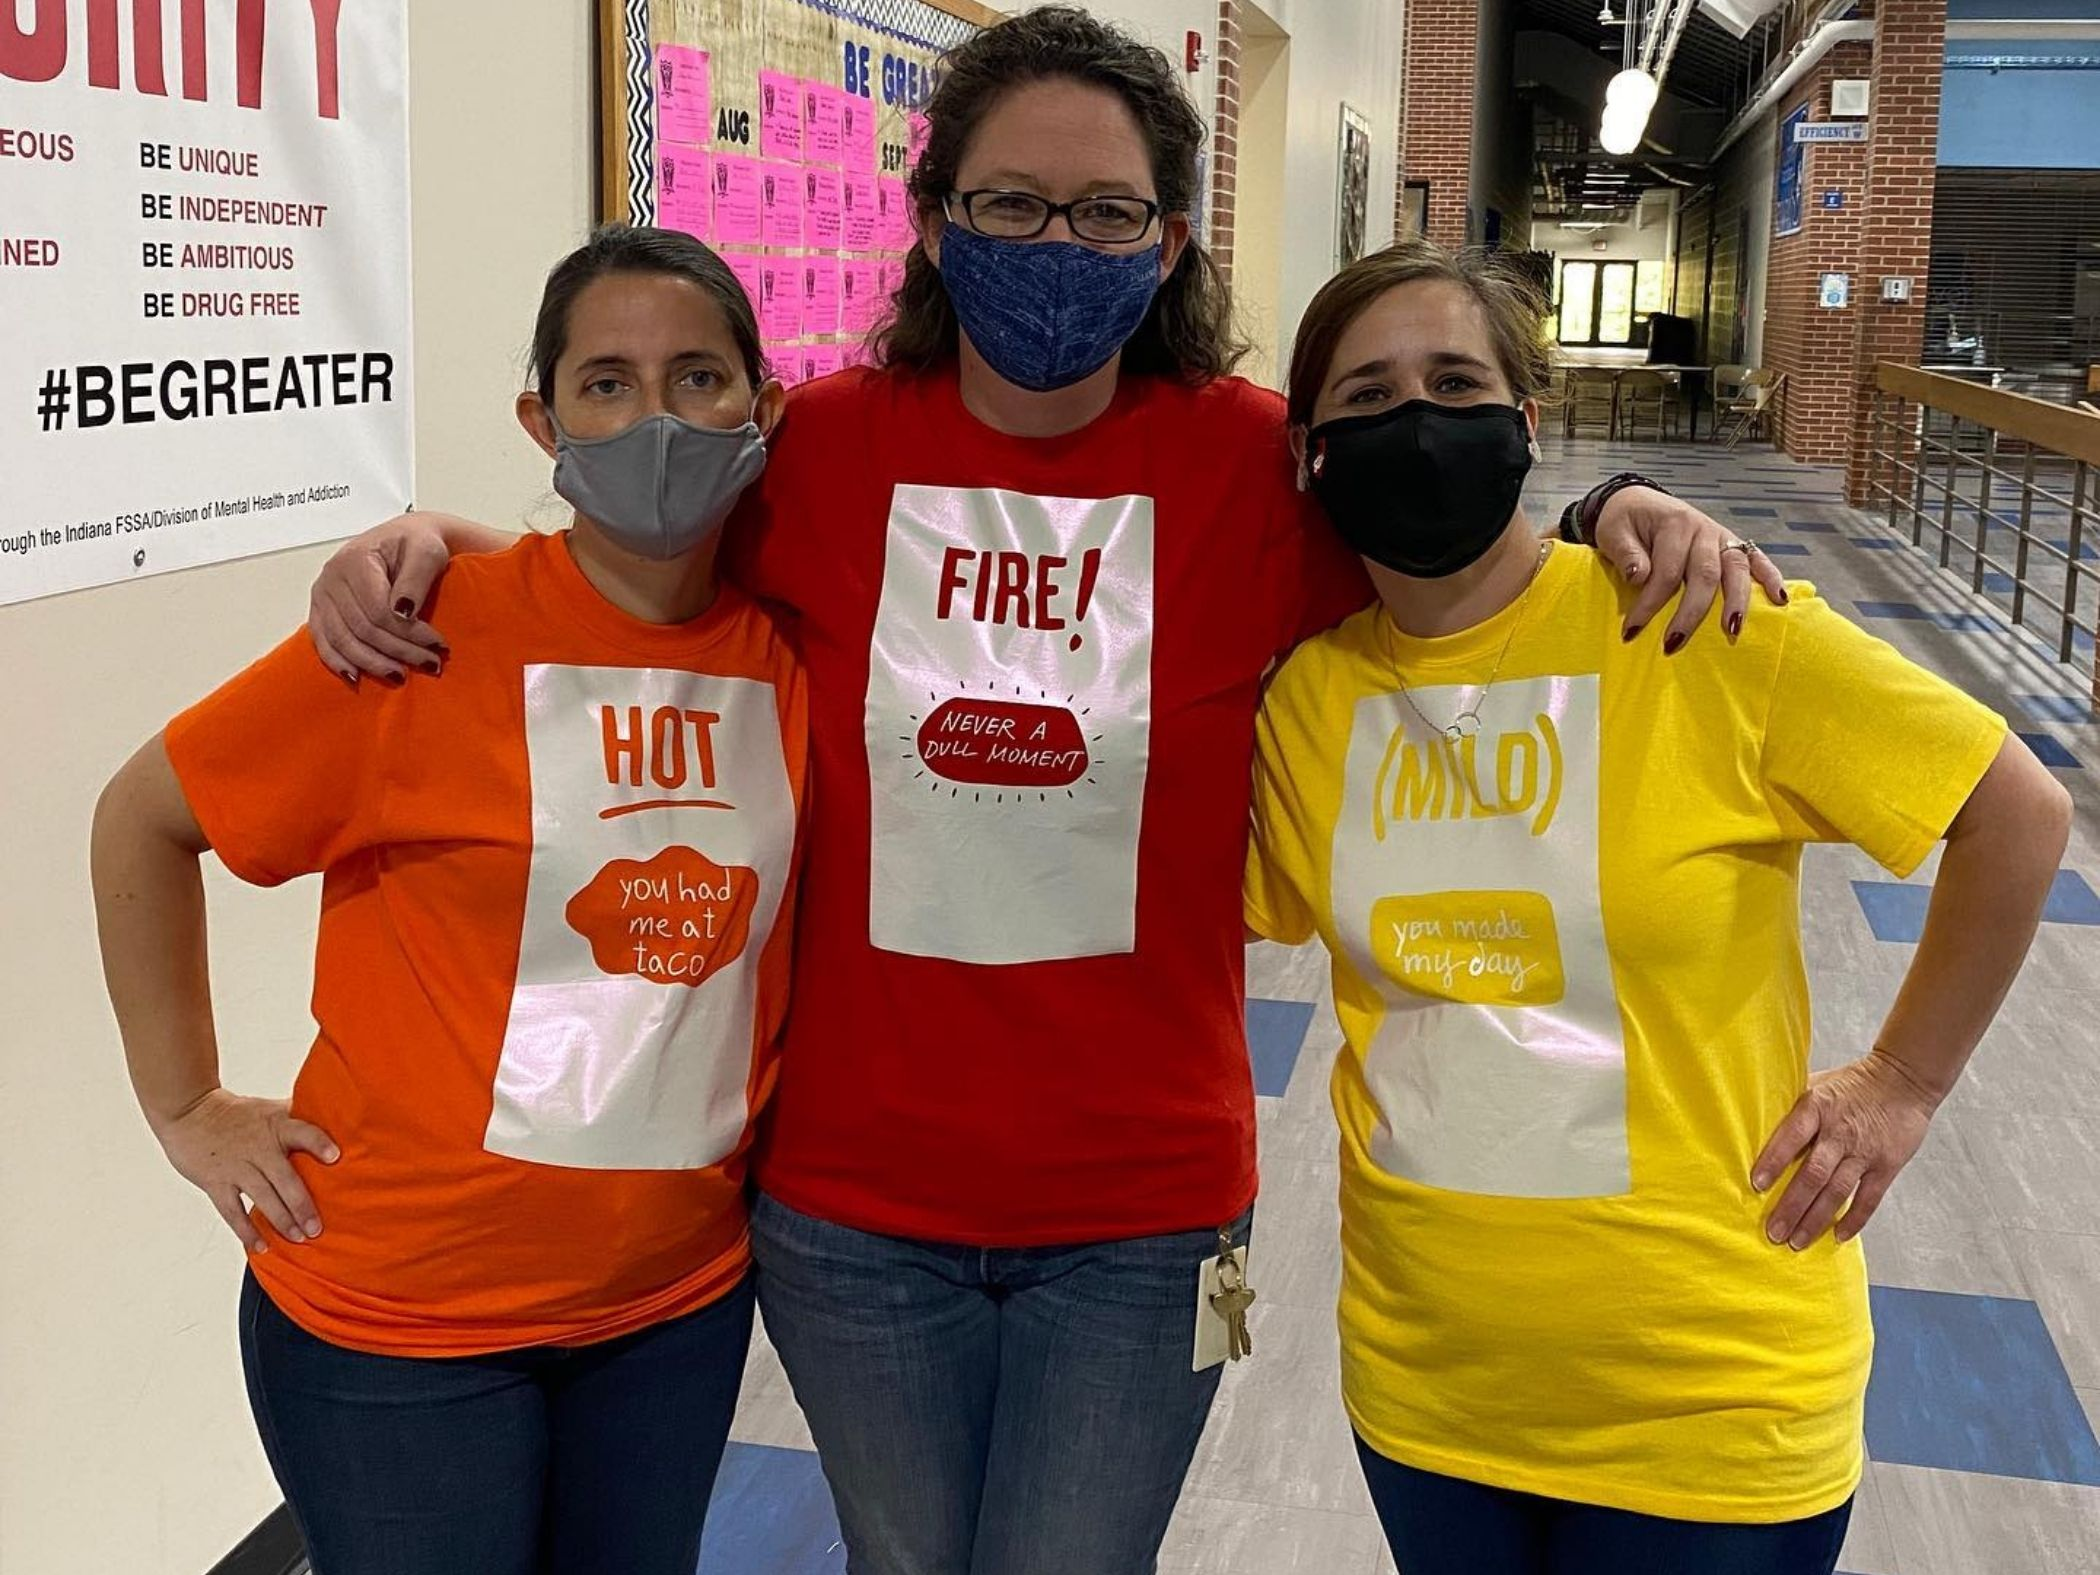 Staff members pose in costume as hot, fire and mild sauce packets